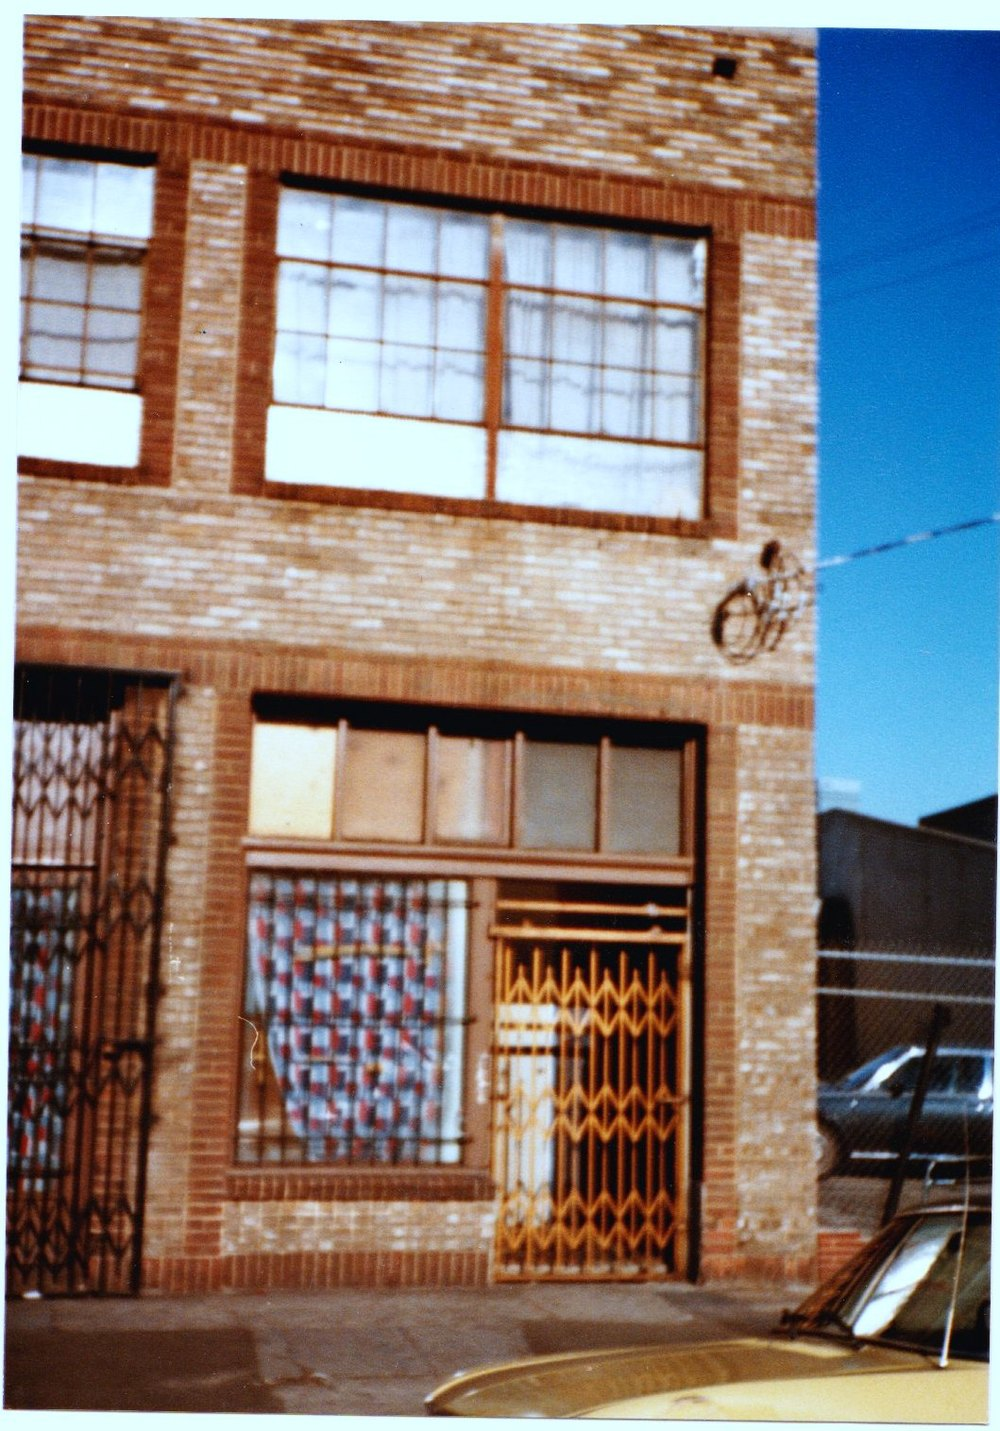 1981 Studio on 765 San Pedro Street, upstairs and facing west